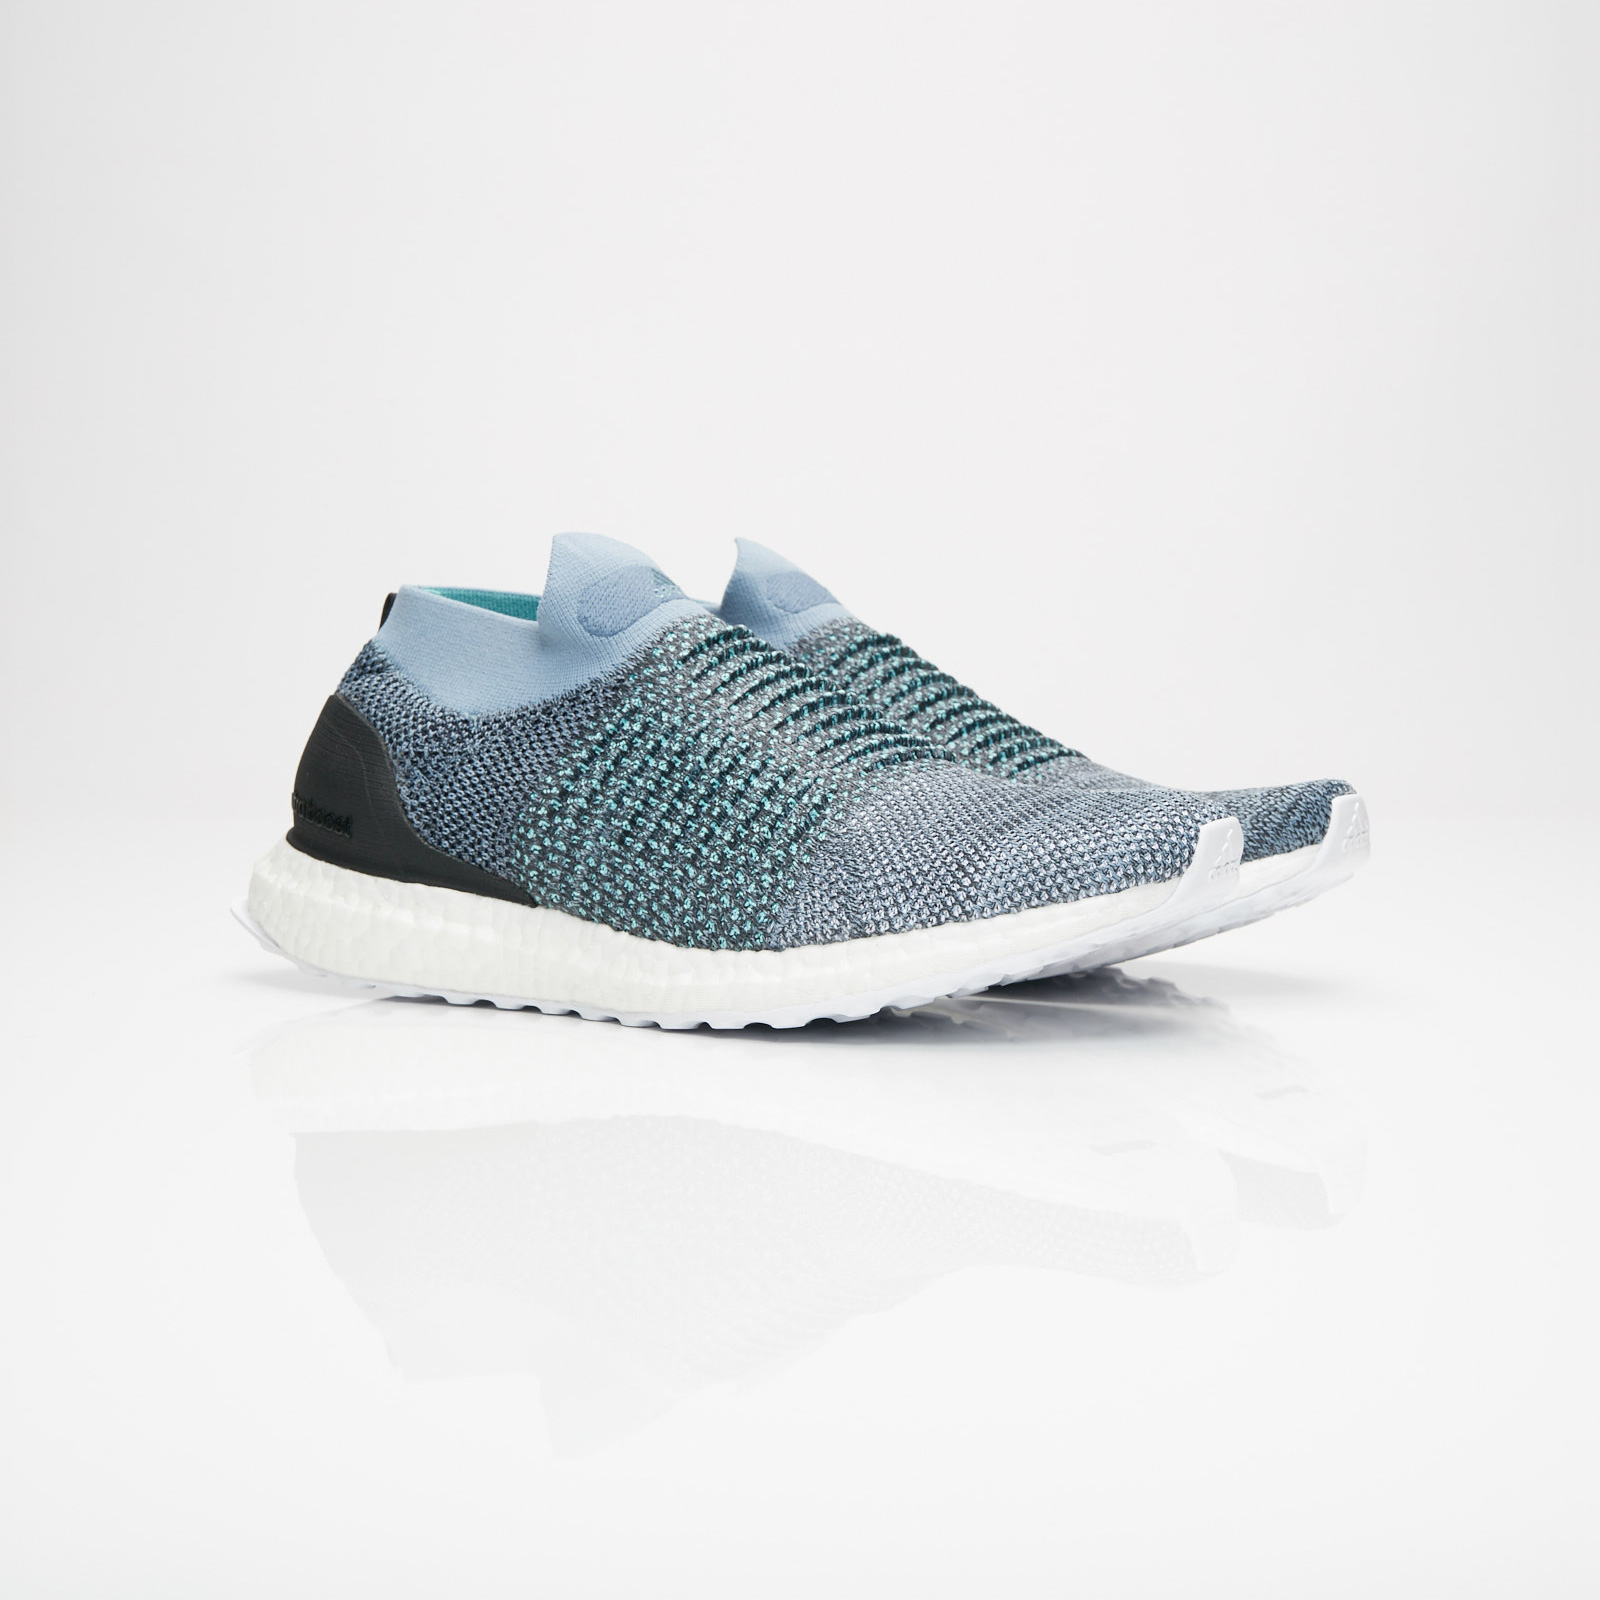 5cd9eb5c606e4 adidas Ultraboost Laceless Parley - Cm8271 - Sneakersnstuff ...